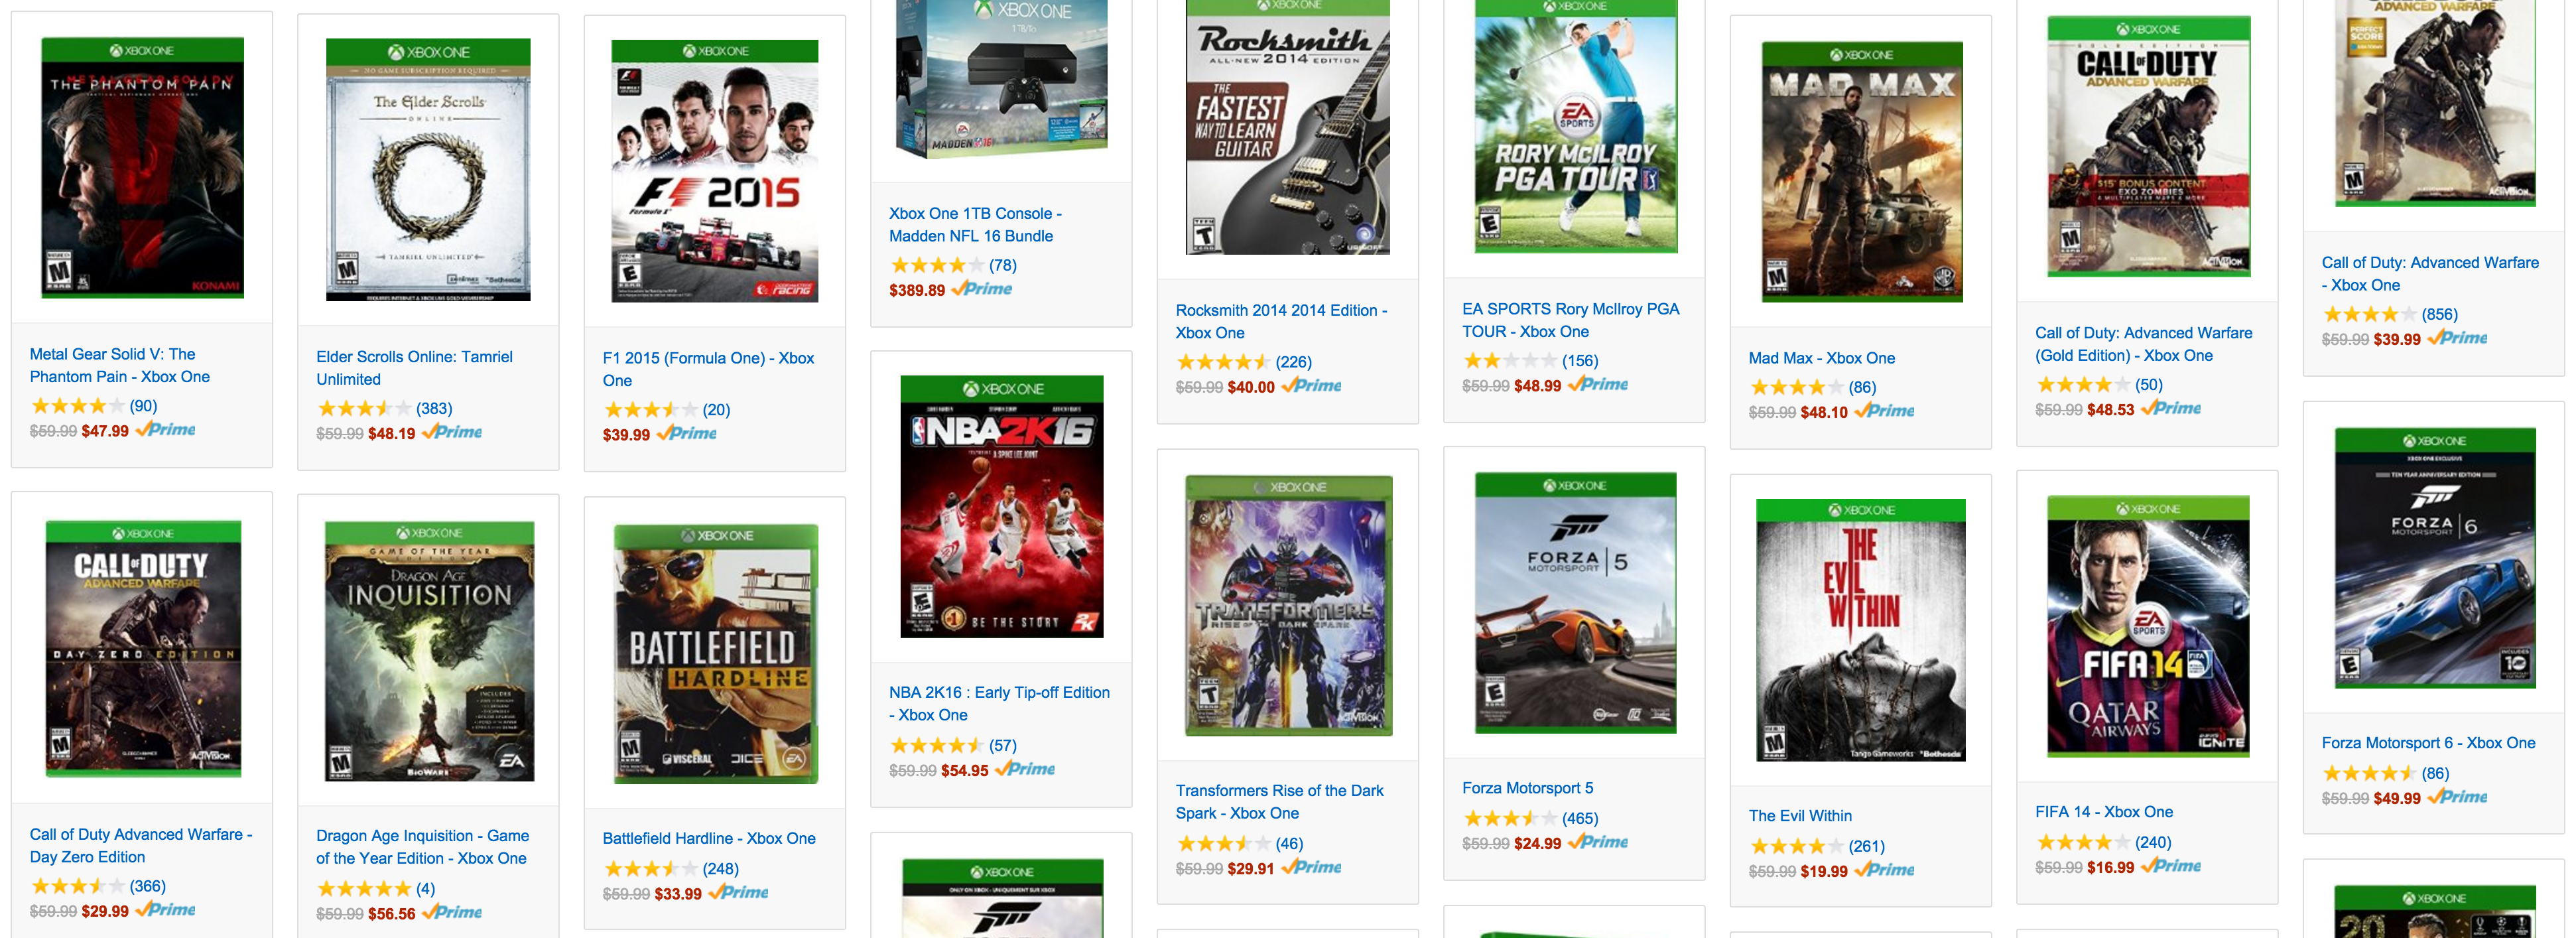 Games/Apps: Kinect Xbox One bundle w/ 4 games $399 ($540+ value), 50